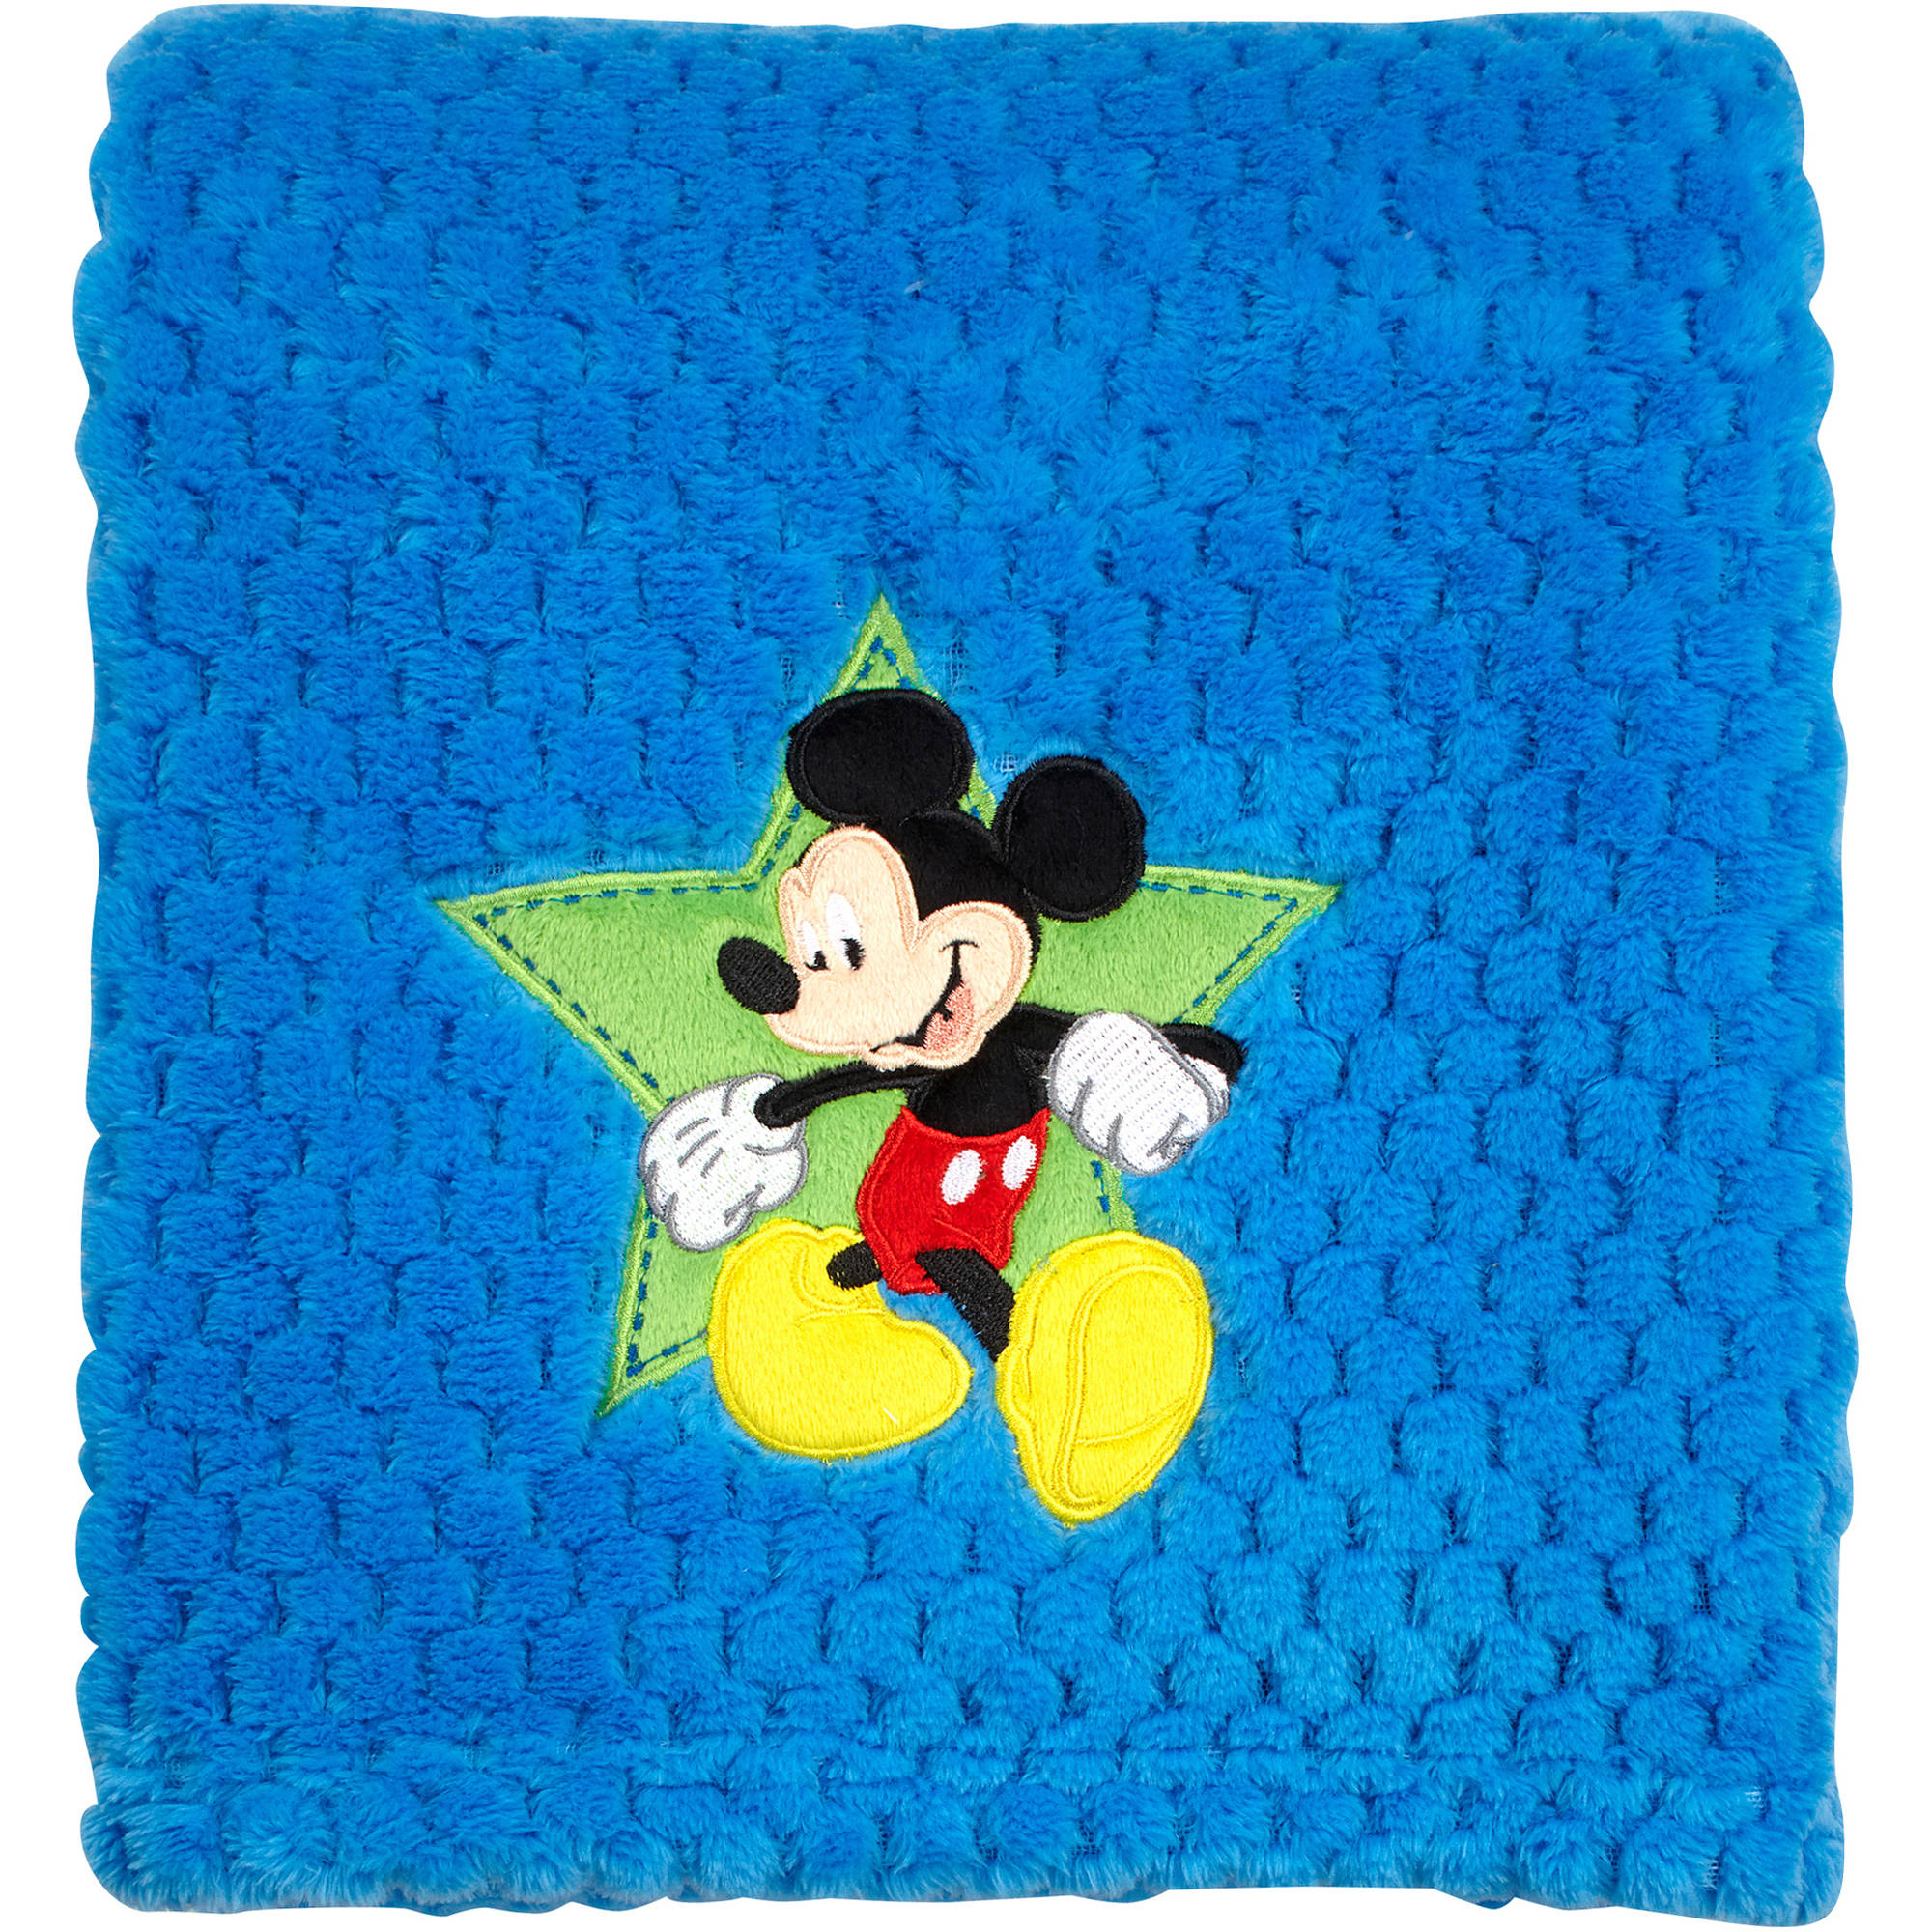 Disney Mickey Mouse Plush Popcorn Applique Blanket